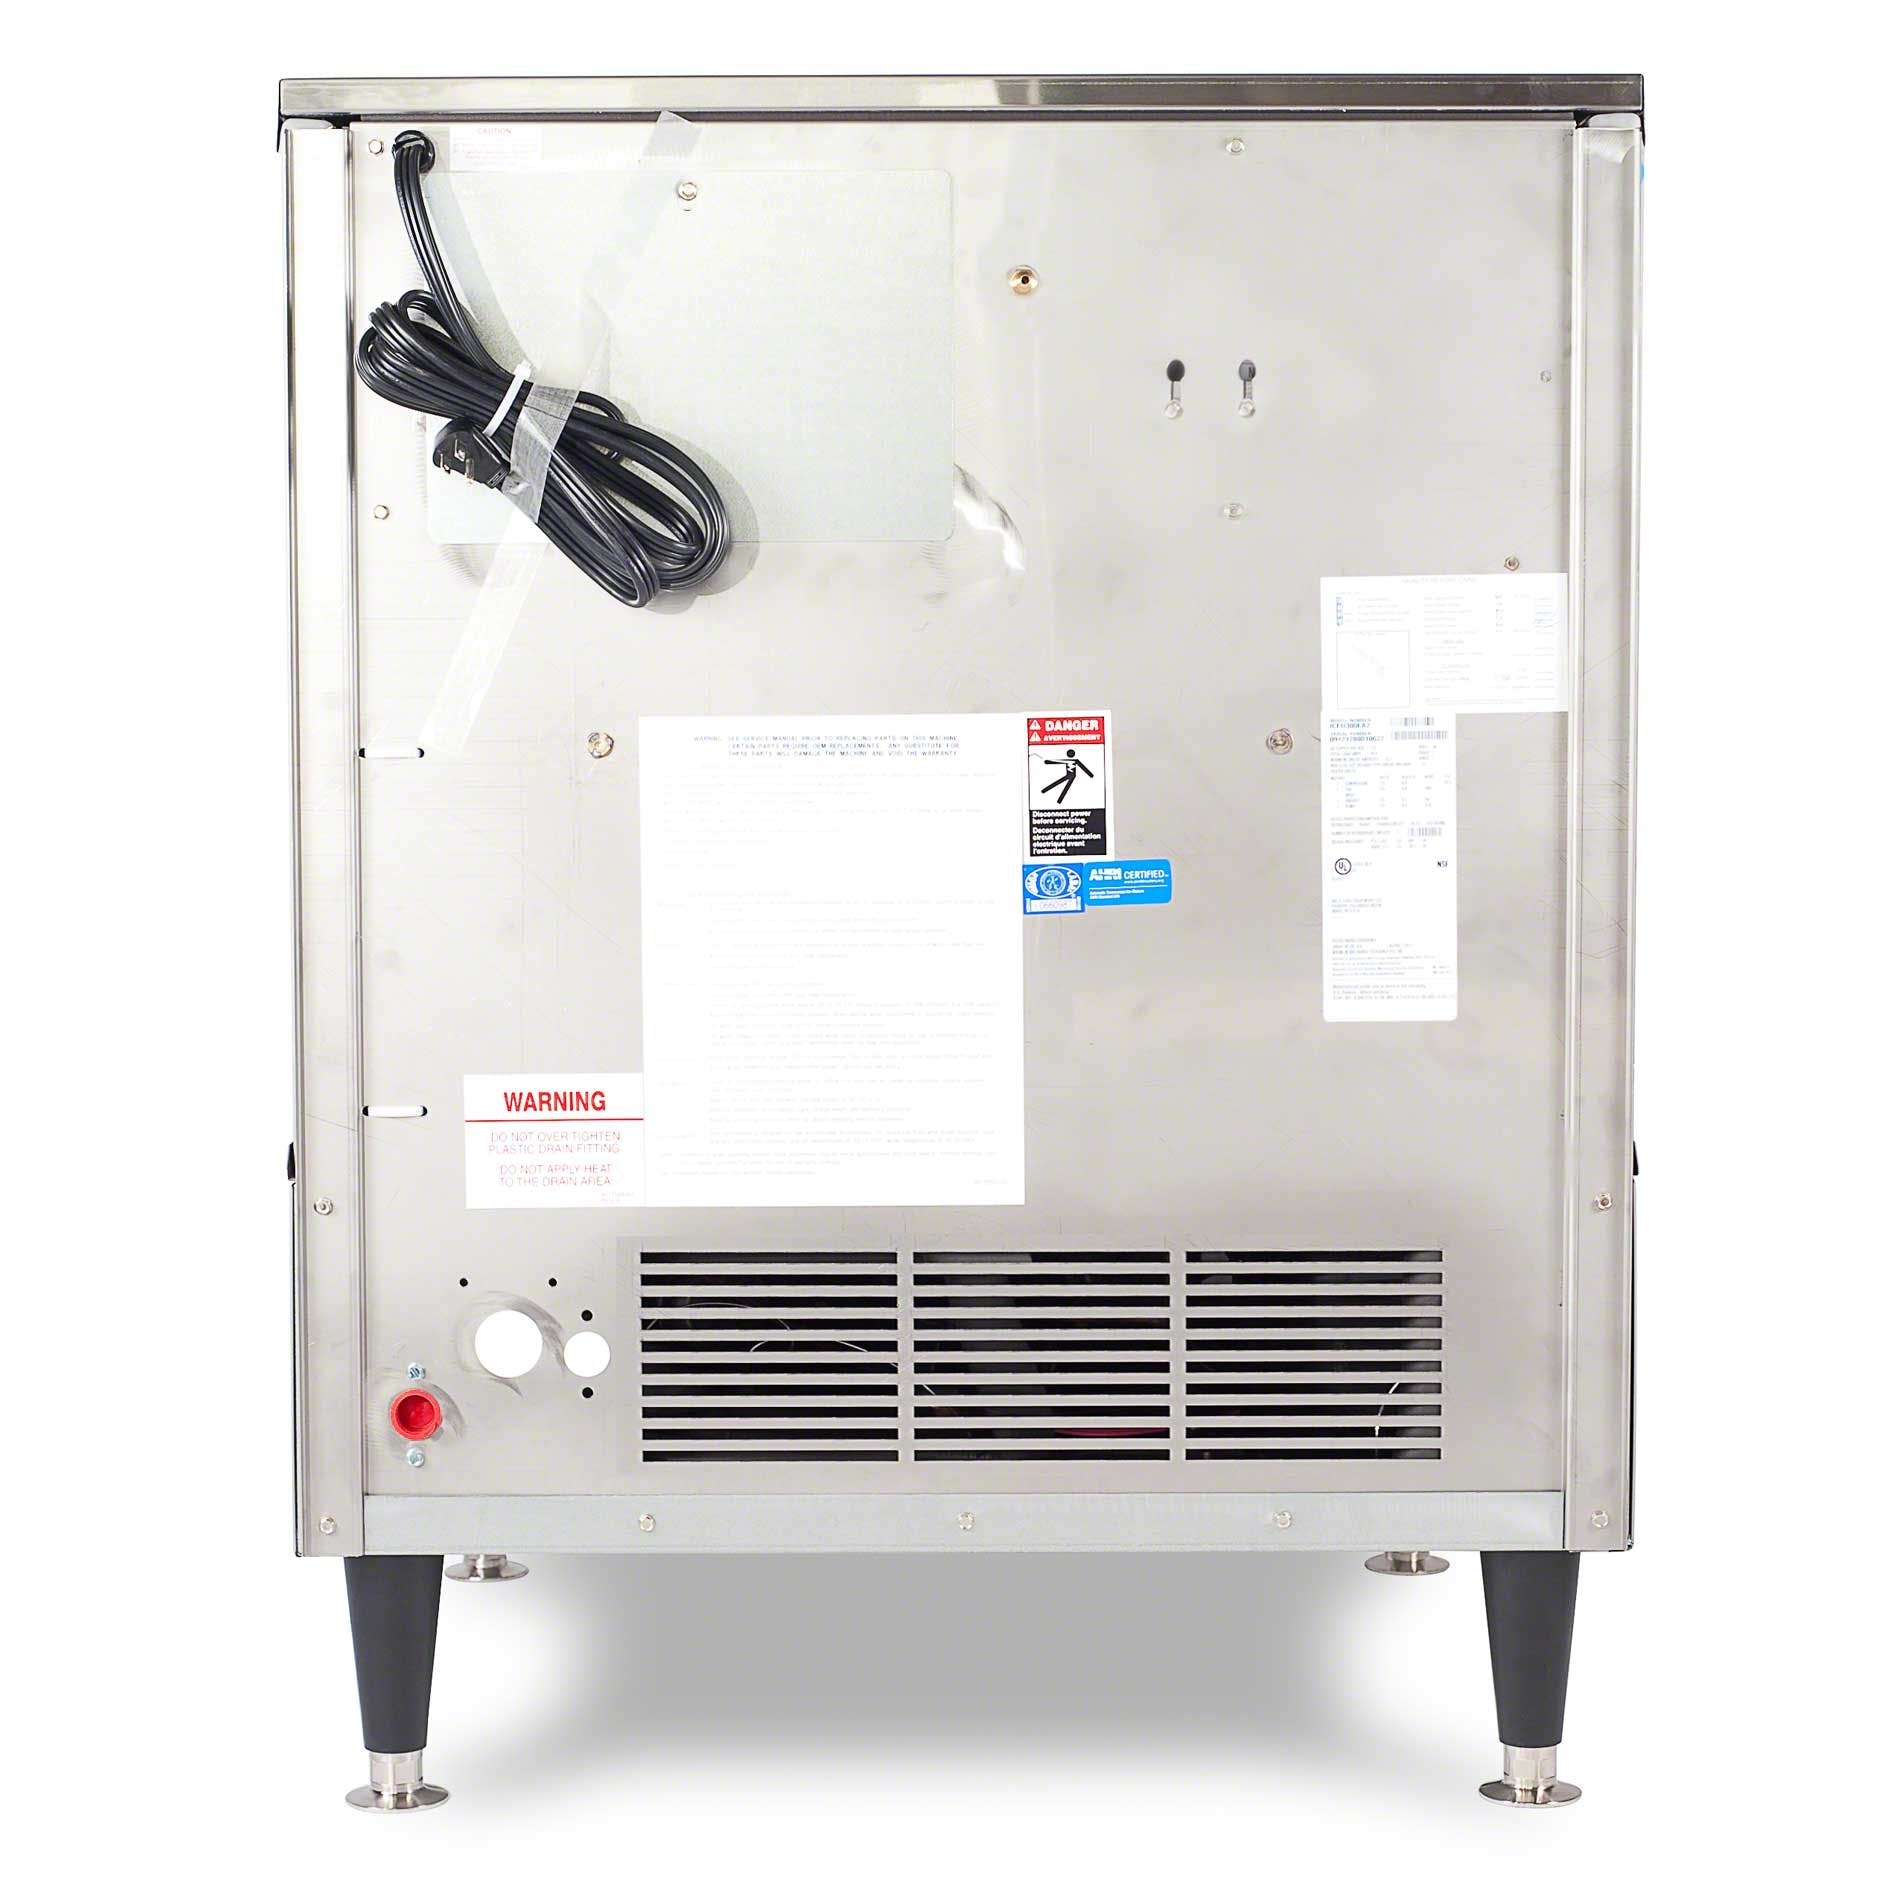 Ice-O-Matic - ICEU150HA 185 lb Self-Contained Half Cube Ice Machine - sold by Food Service Warehouse